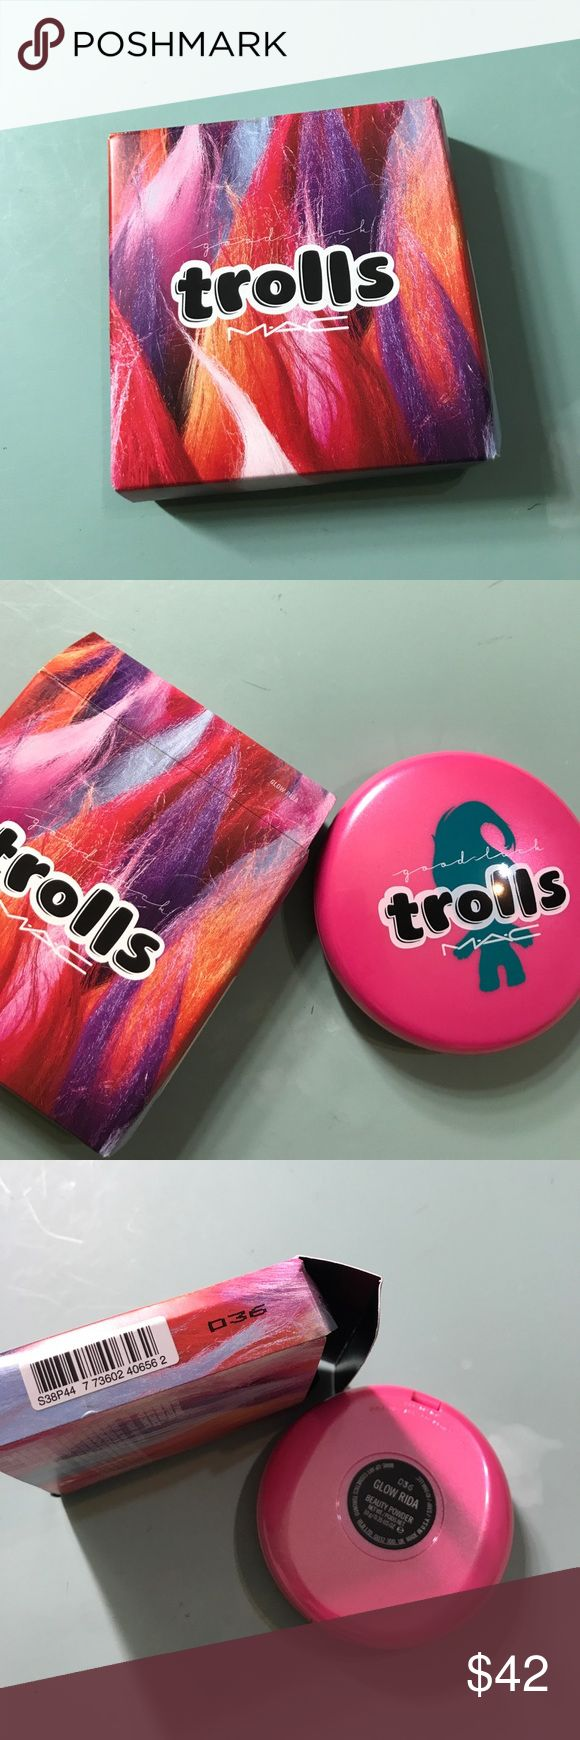 Mac LE Trolls Glow Rida Limited Edition Beauty Powder. The shade is Glow Rida. It can be used as a highlight, soft blush & finish. It is new in box, never used. Please ask all questions before purchase. No returns allowed. MAC Cosmetics Makeup Luminizer